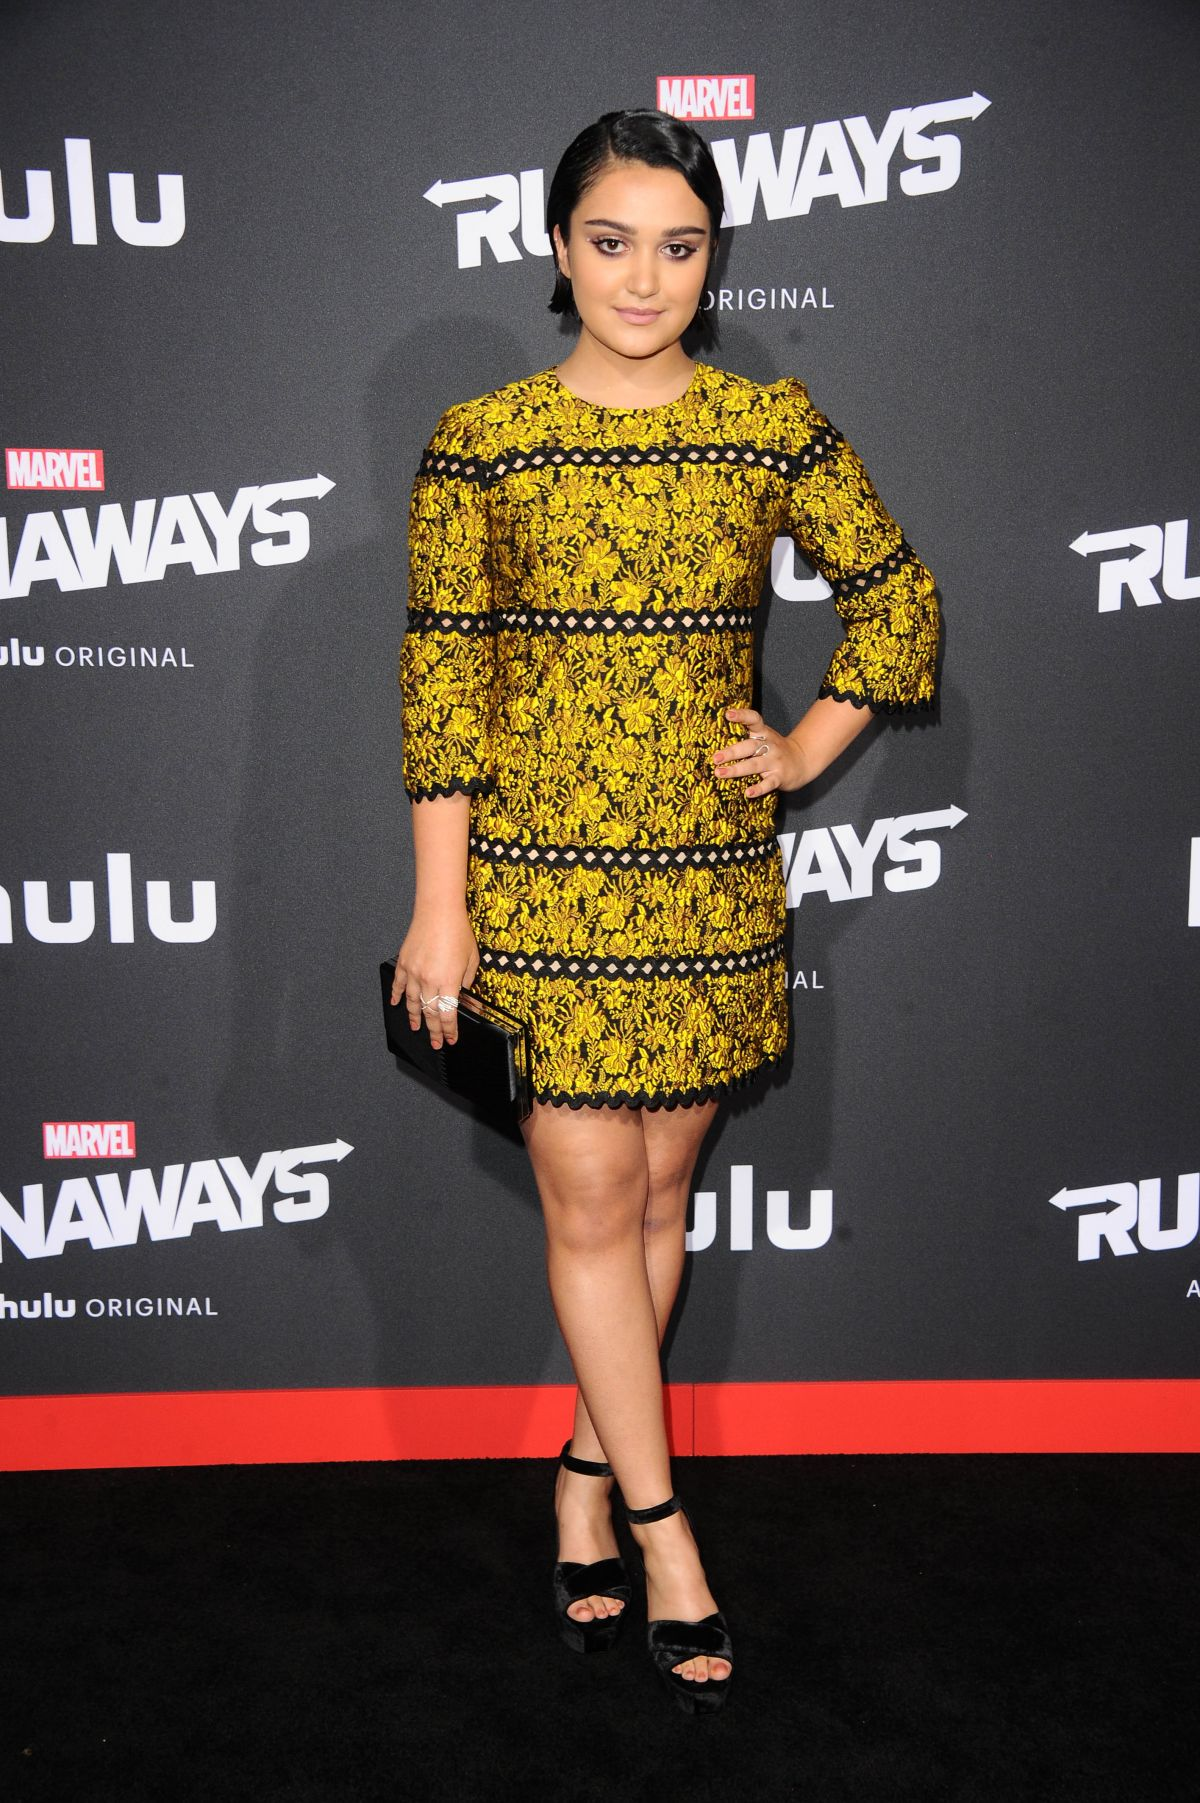 ariela-barer-at-runaways-premiere-in-los-angeles-11-16-2017-4.jpg